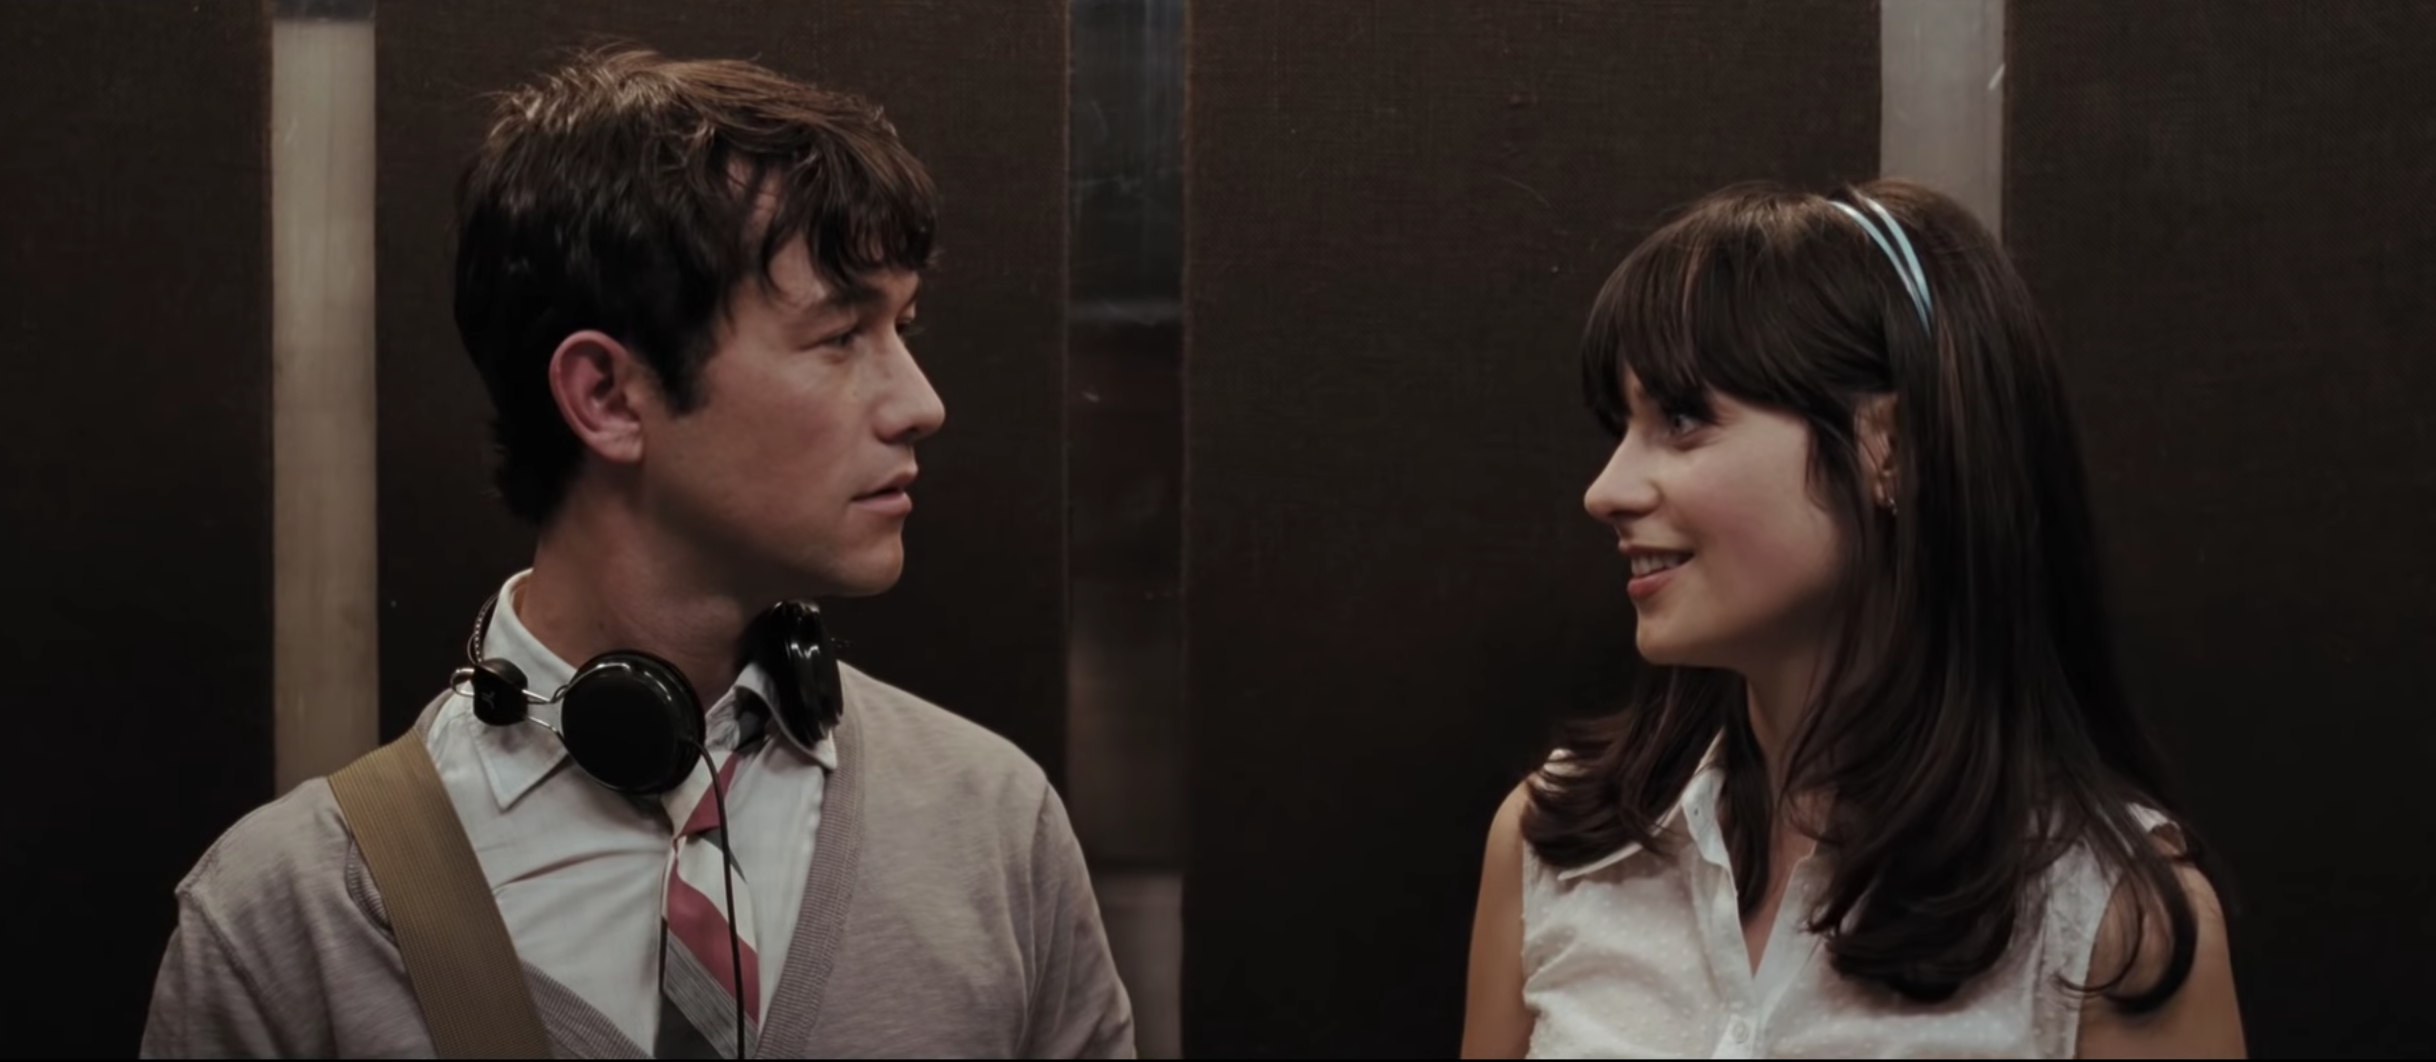 How 500 Days Of Summer Highlights The Double Standards In Rom Coms